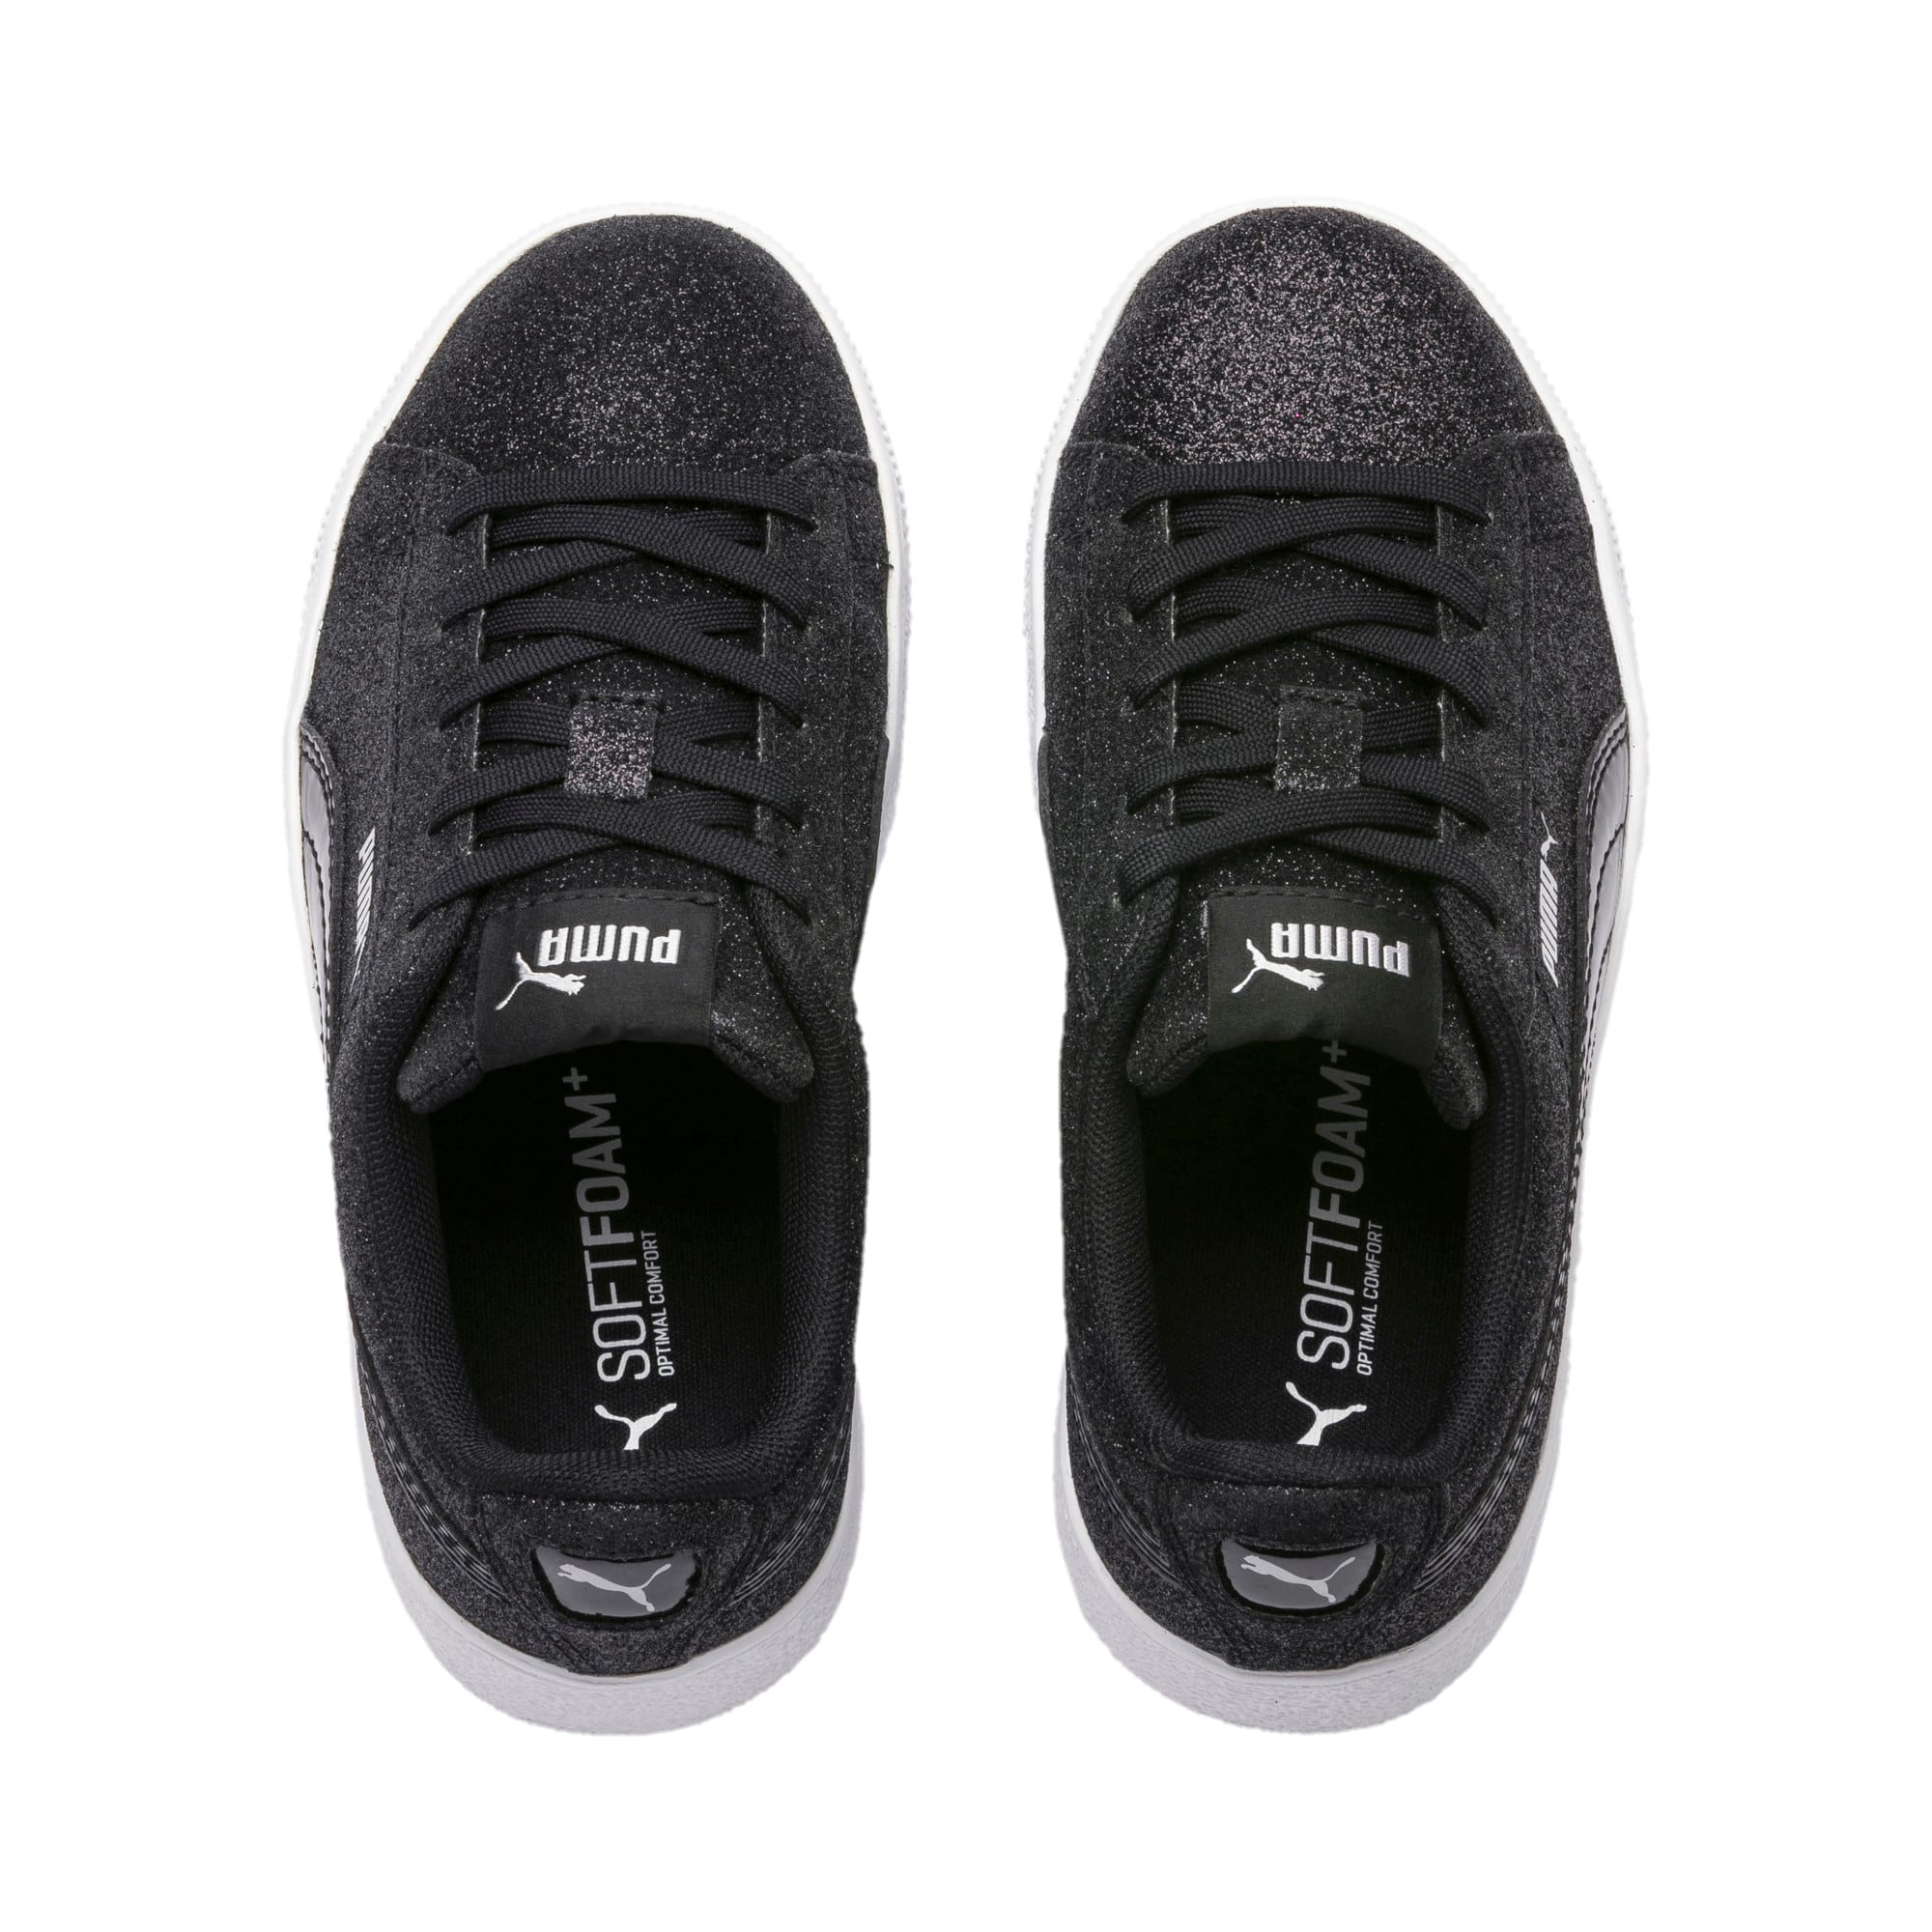 Thumbnail 6 of Basket Vikky Platform Glitz pour fille, Puma Black-Puma Black, medium